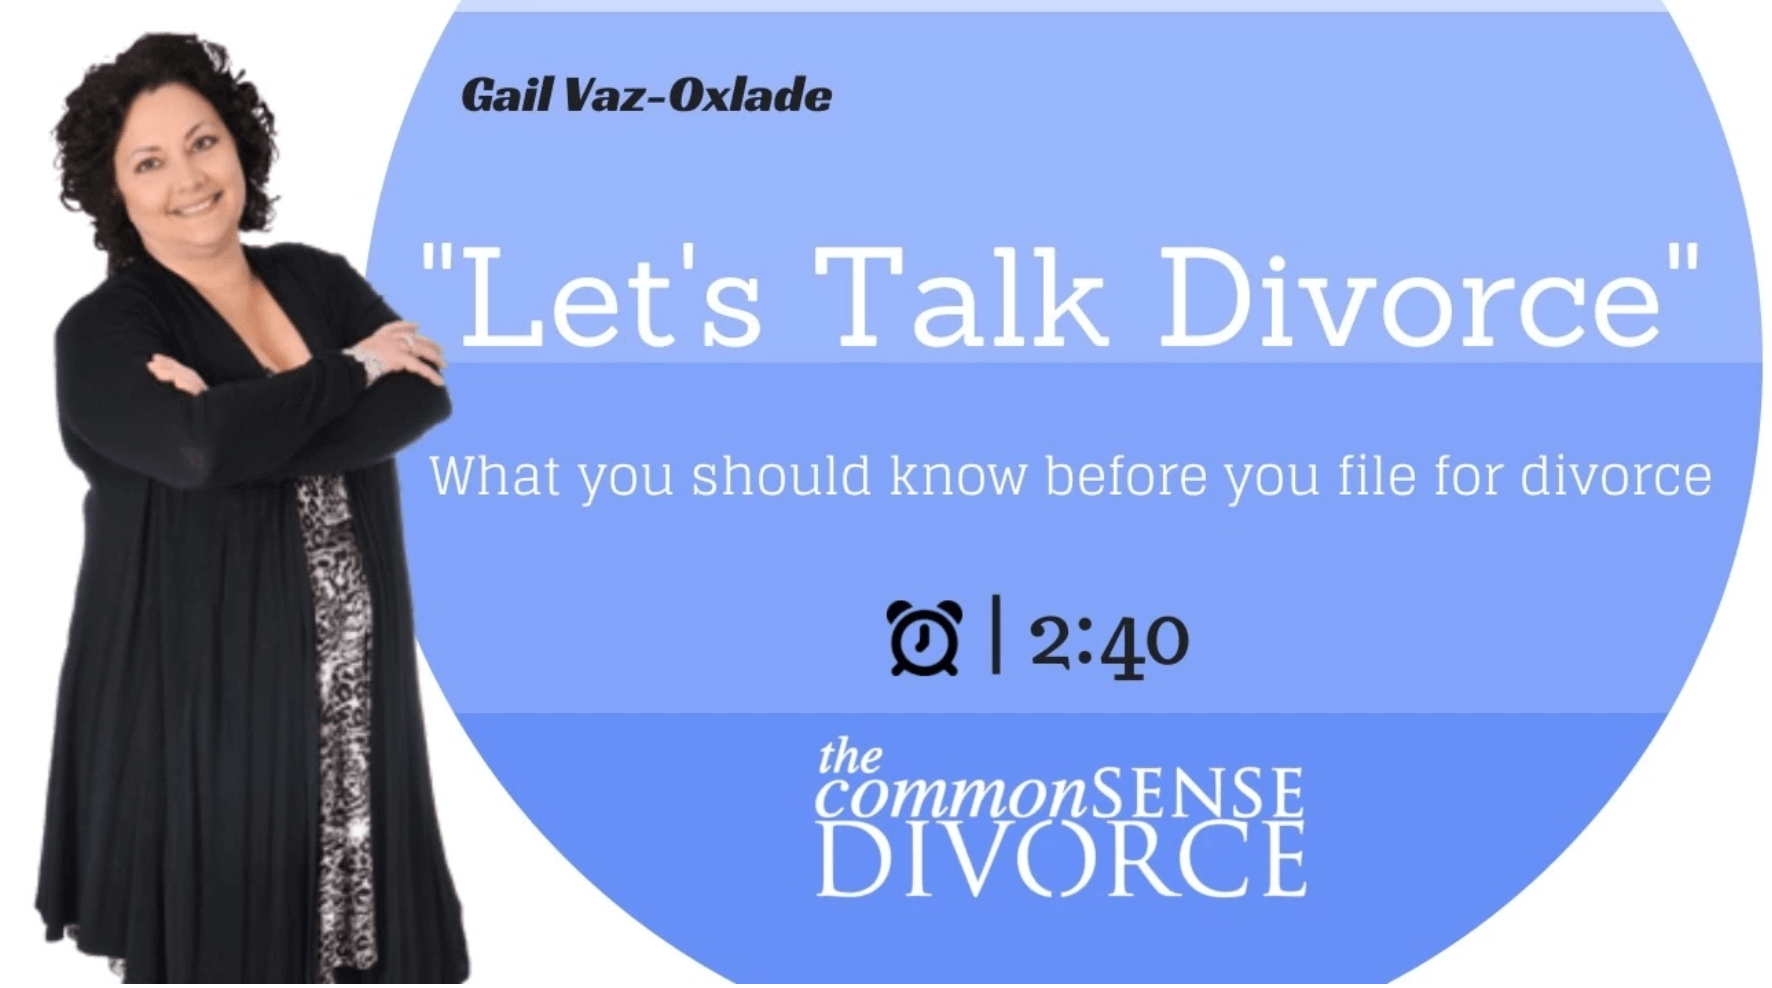 Let's Talk Divorce with Gail Vaz-Oxlade 4